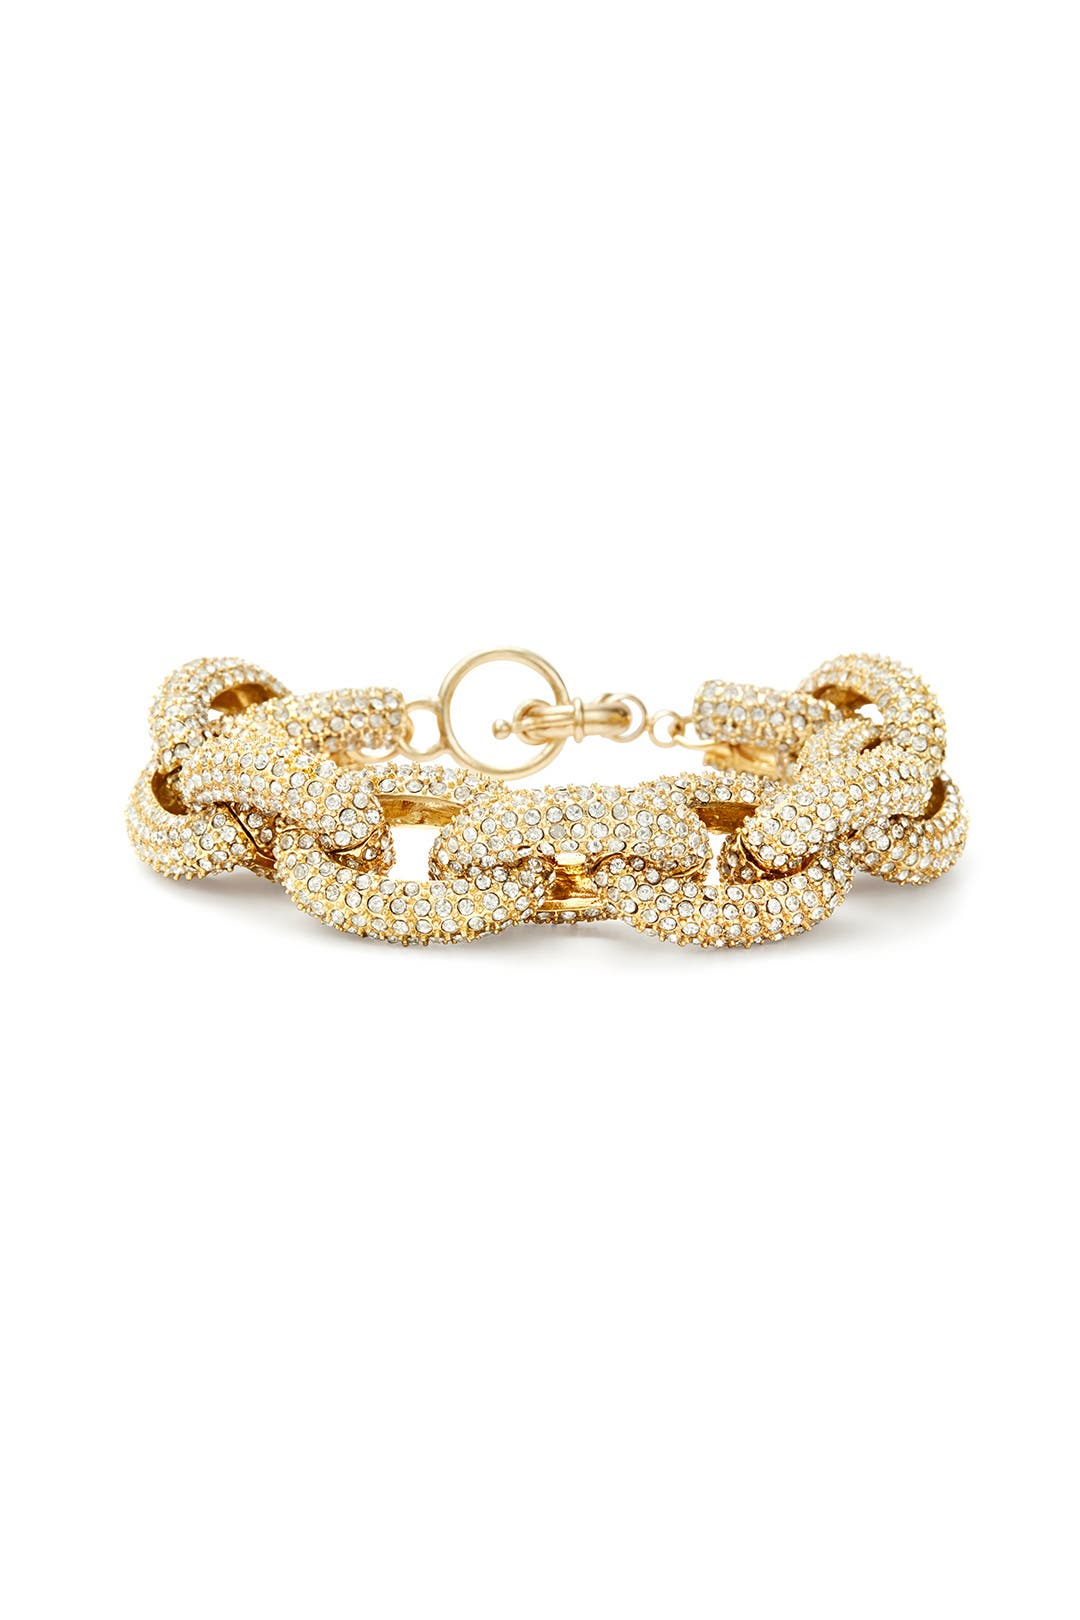 Gold Record Bracelet by Slate & Willow Accessories